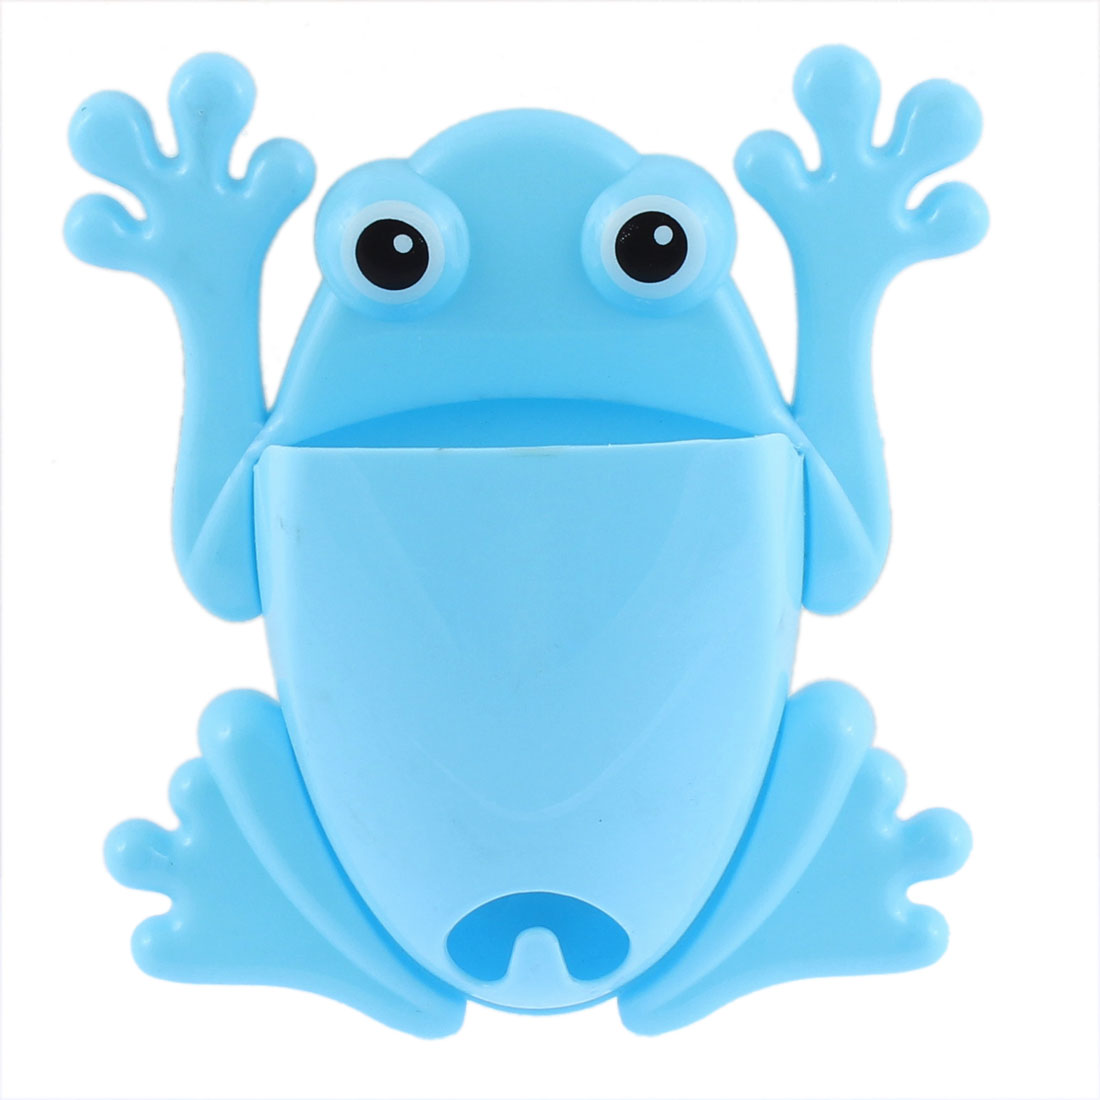 Home Bathroom Frog Design Wall Stick Toothbrush Holder Organizer Blue